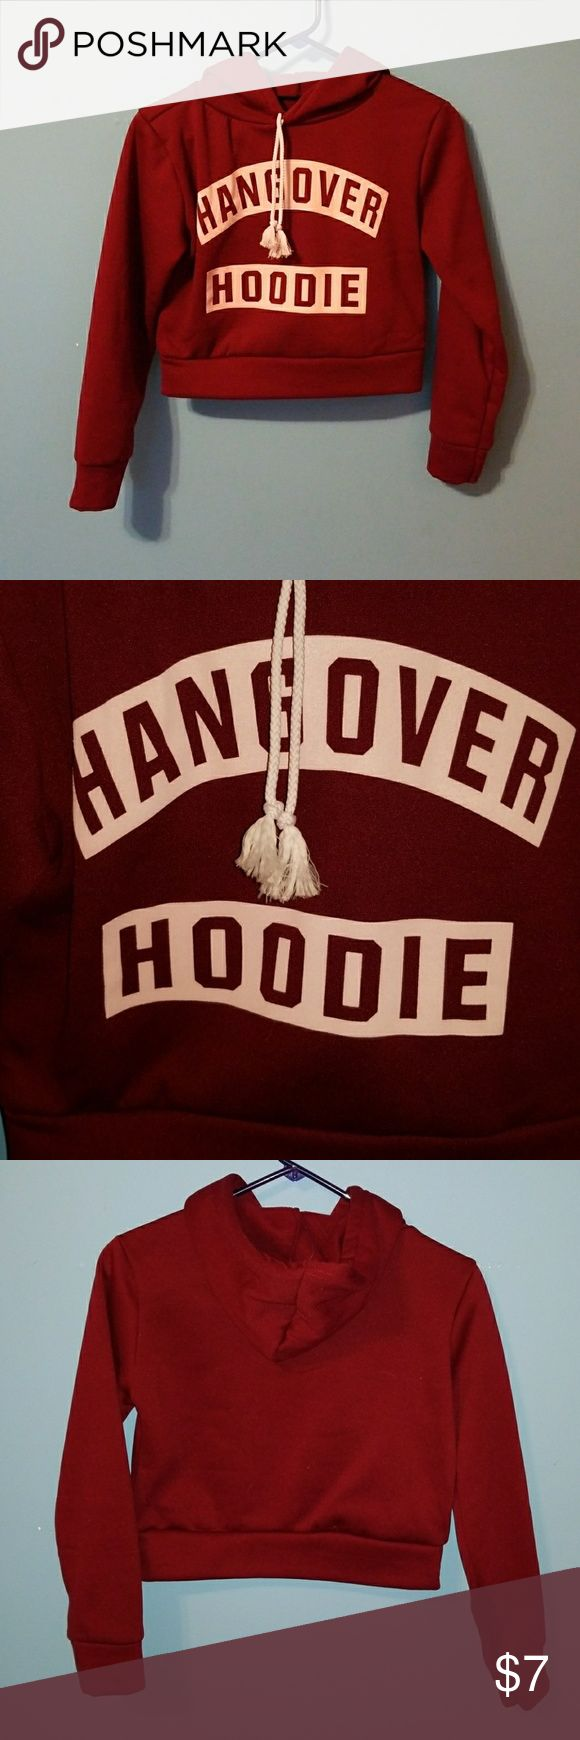 Crop Top Hoodie The hoodie is a burgundy/wine color. Soft like fleece on the inside. It is warm. Only worn once; I bought it and is too small to be truly comfortable. There is no tag with a size; however i usually wear a medium to large. Not sure of the original price. Tops Sweatshirts & Hoodies